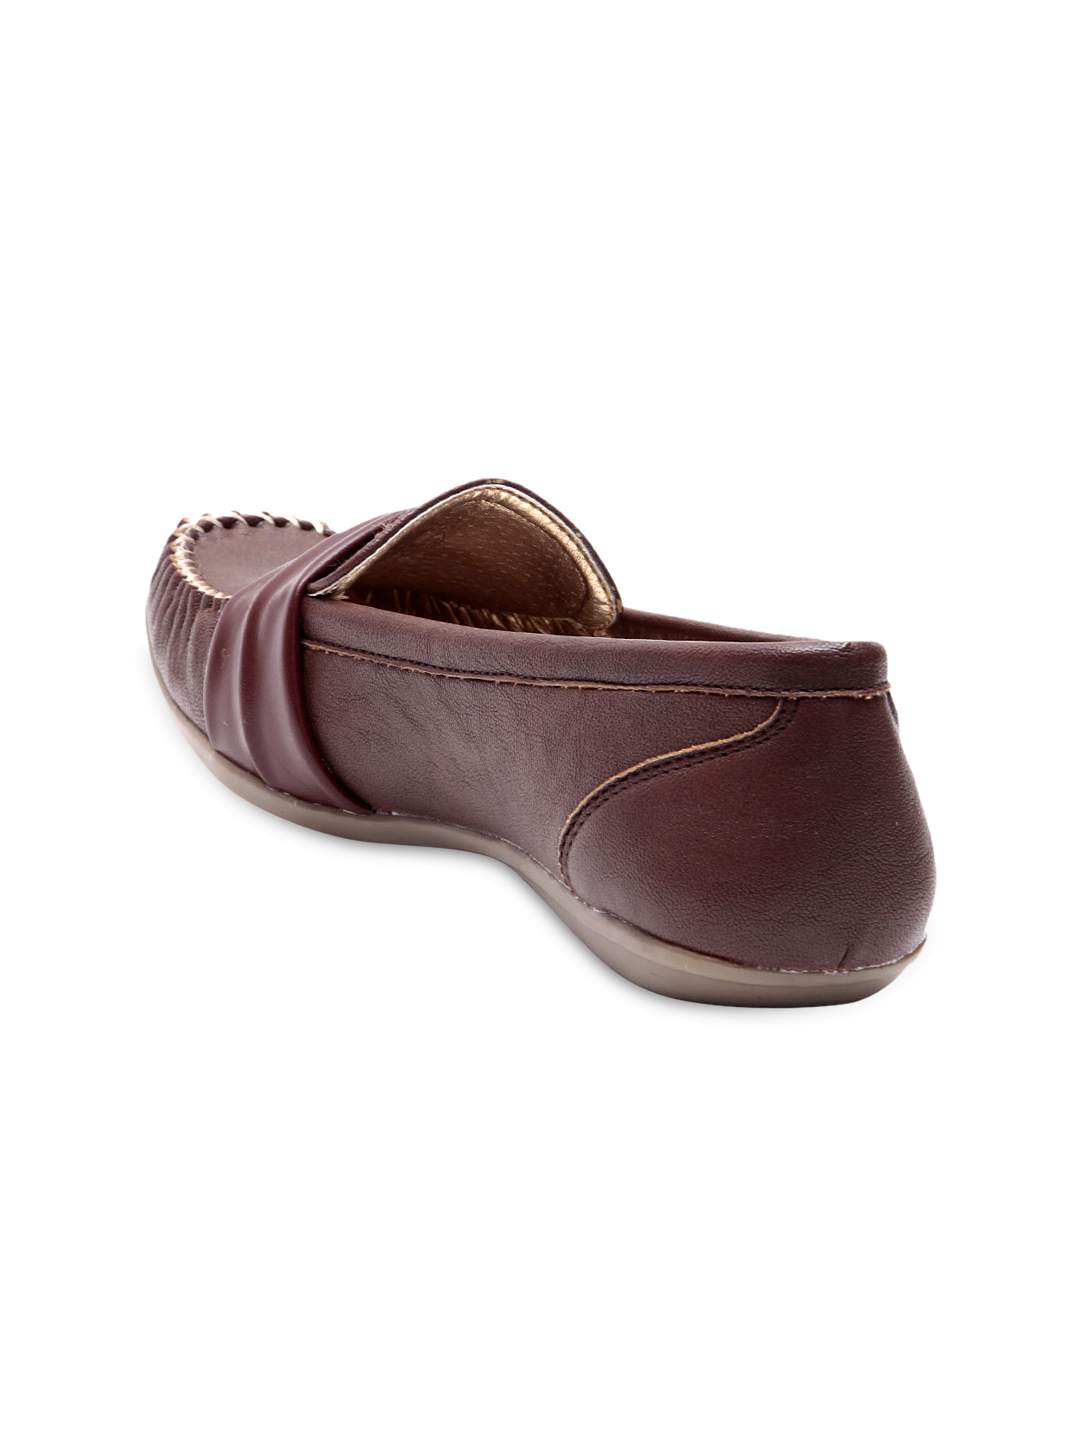 Ucb Loafers For - 28 Images - Ucb Loafer Shoes 28 Images Shopping At Myntra India S Ucb Loafers ...